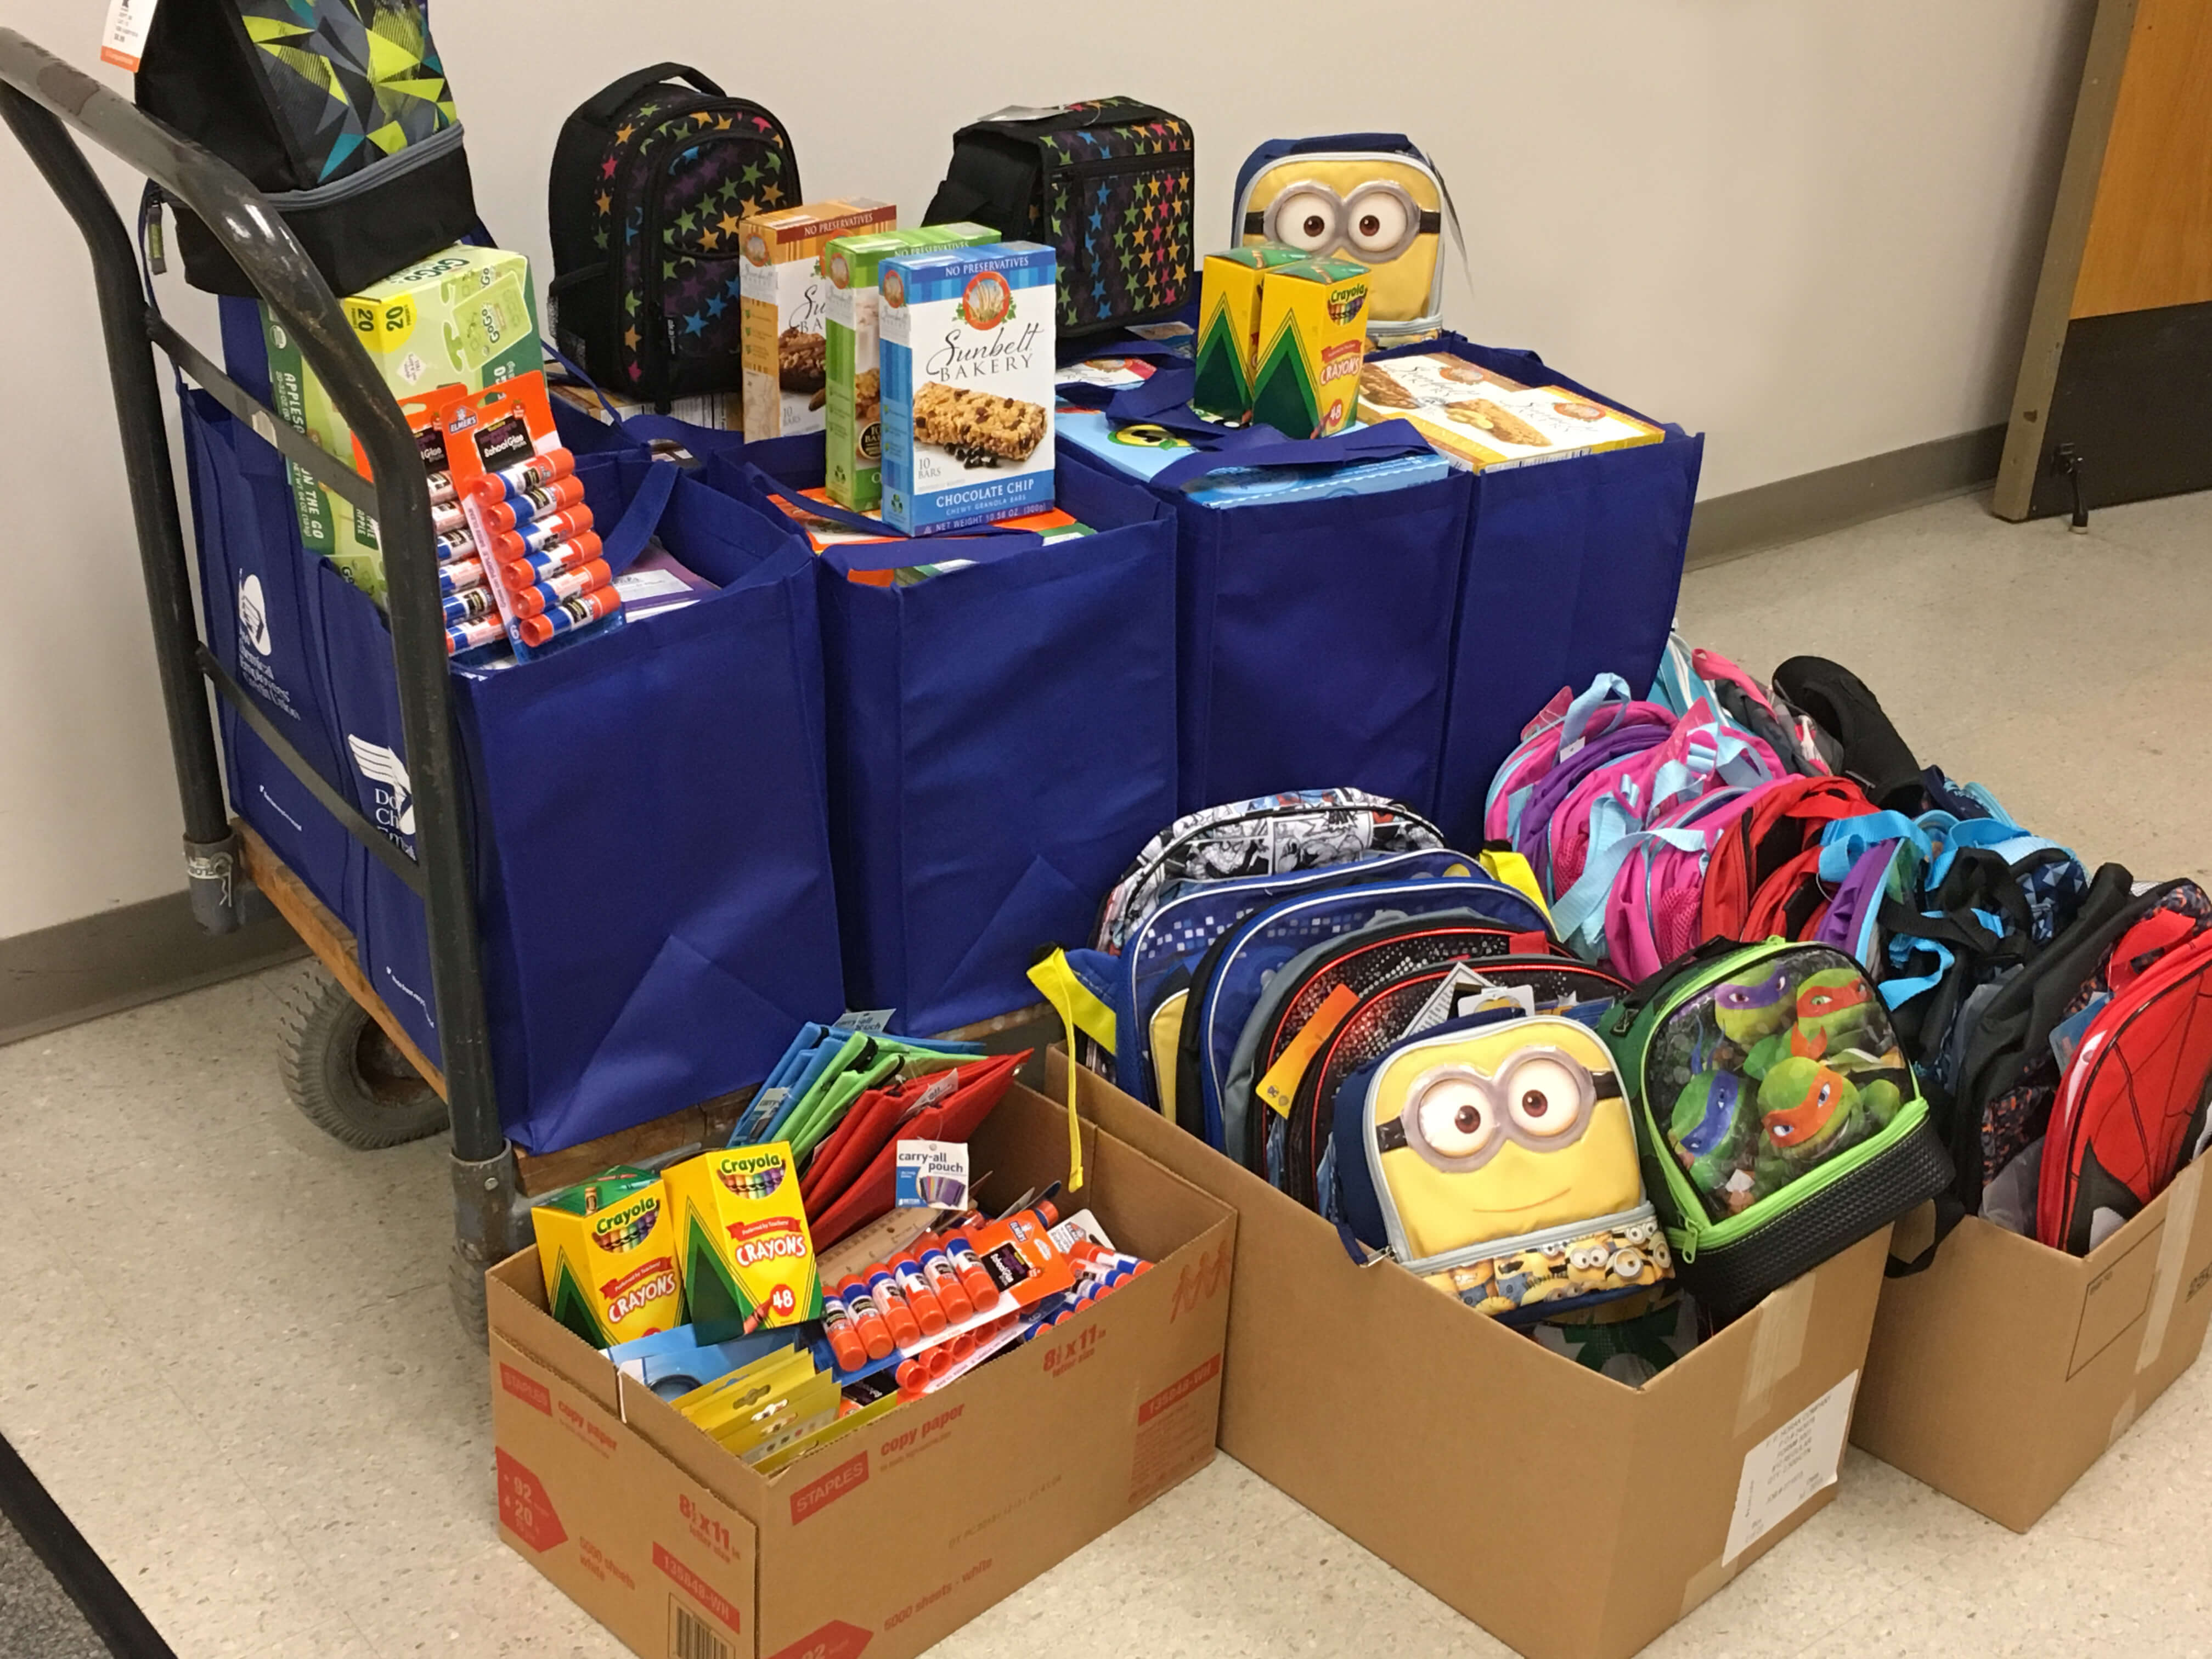 An Image of a wheeled cart filled with DCECU fabric bags full of children's school supplies and snacks